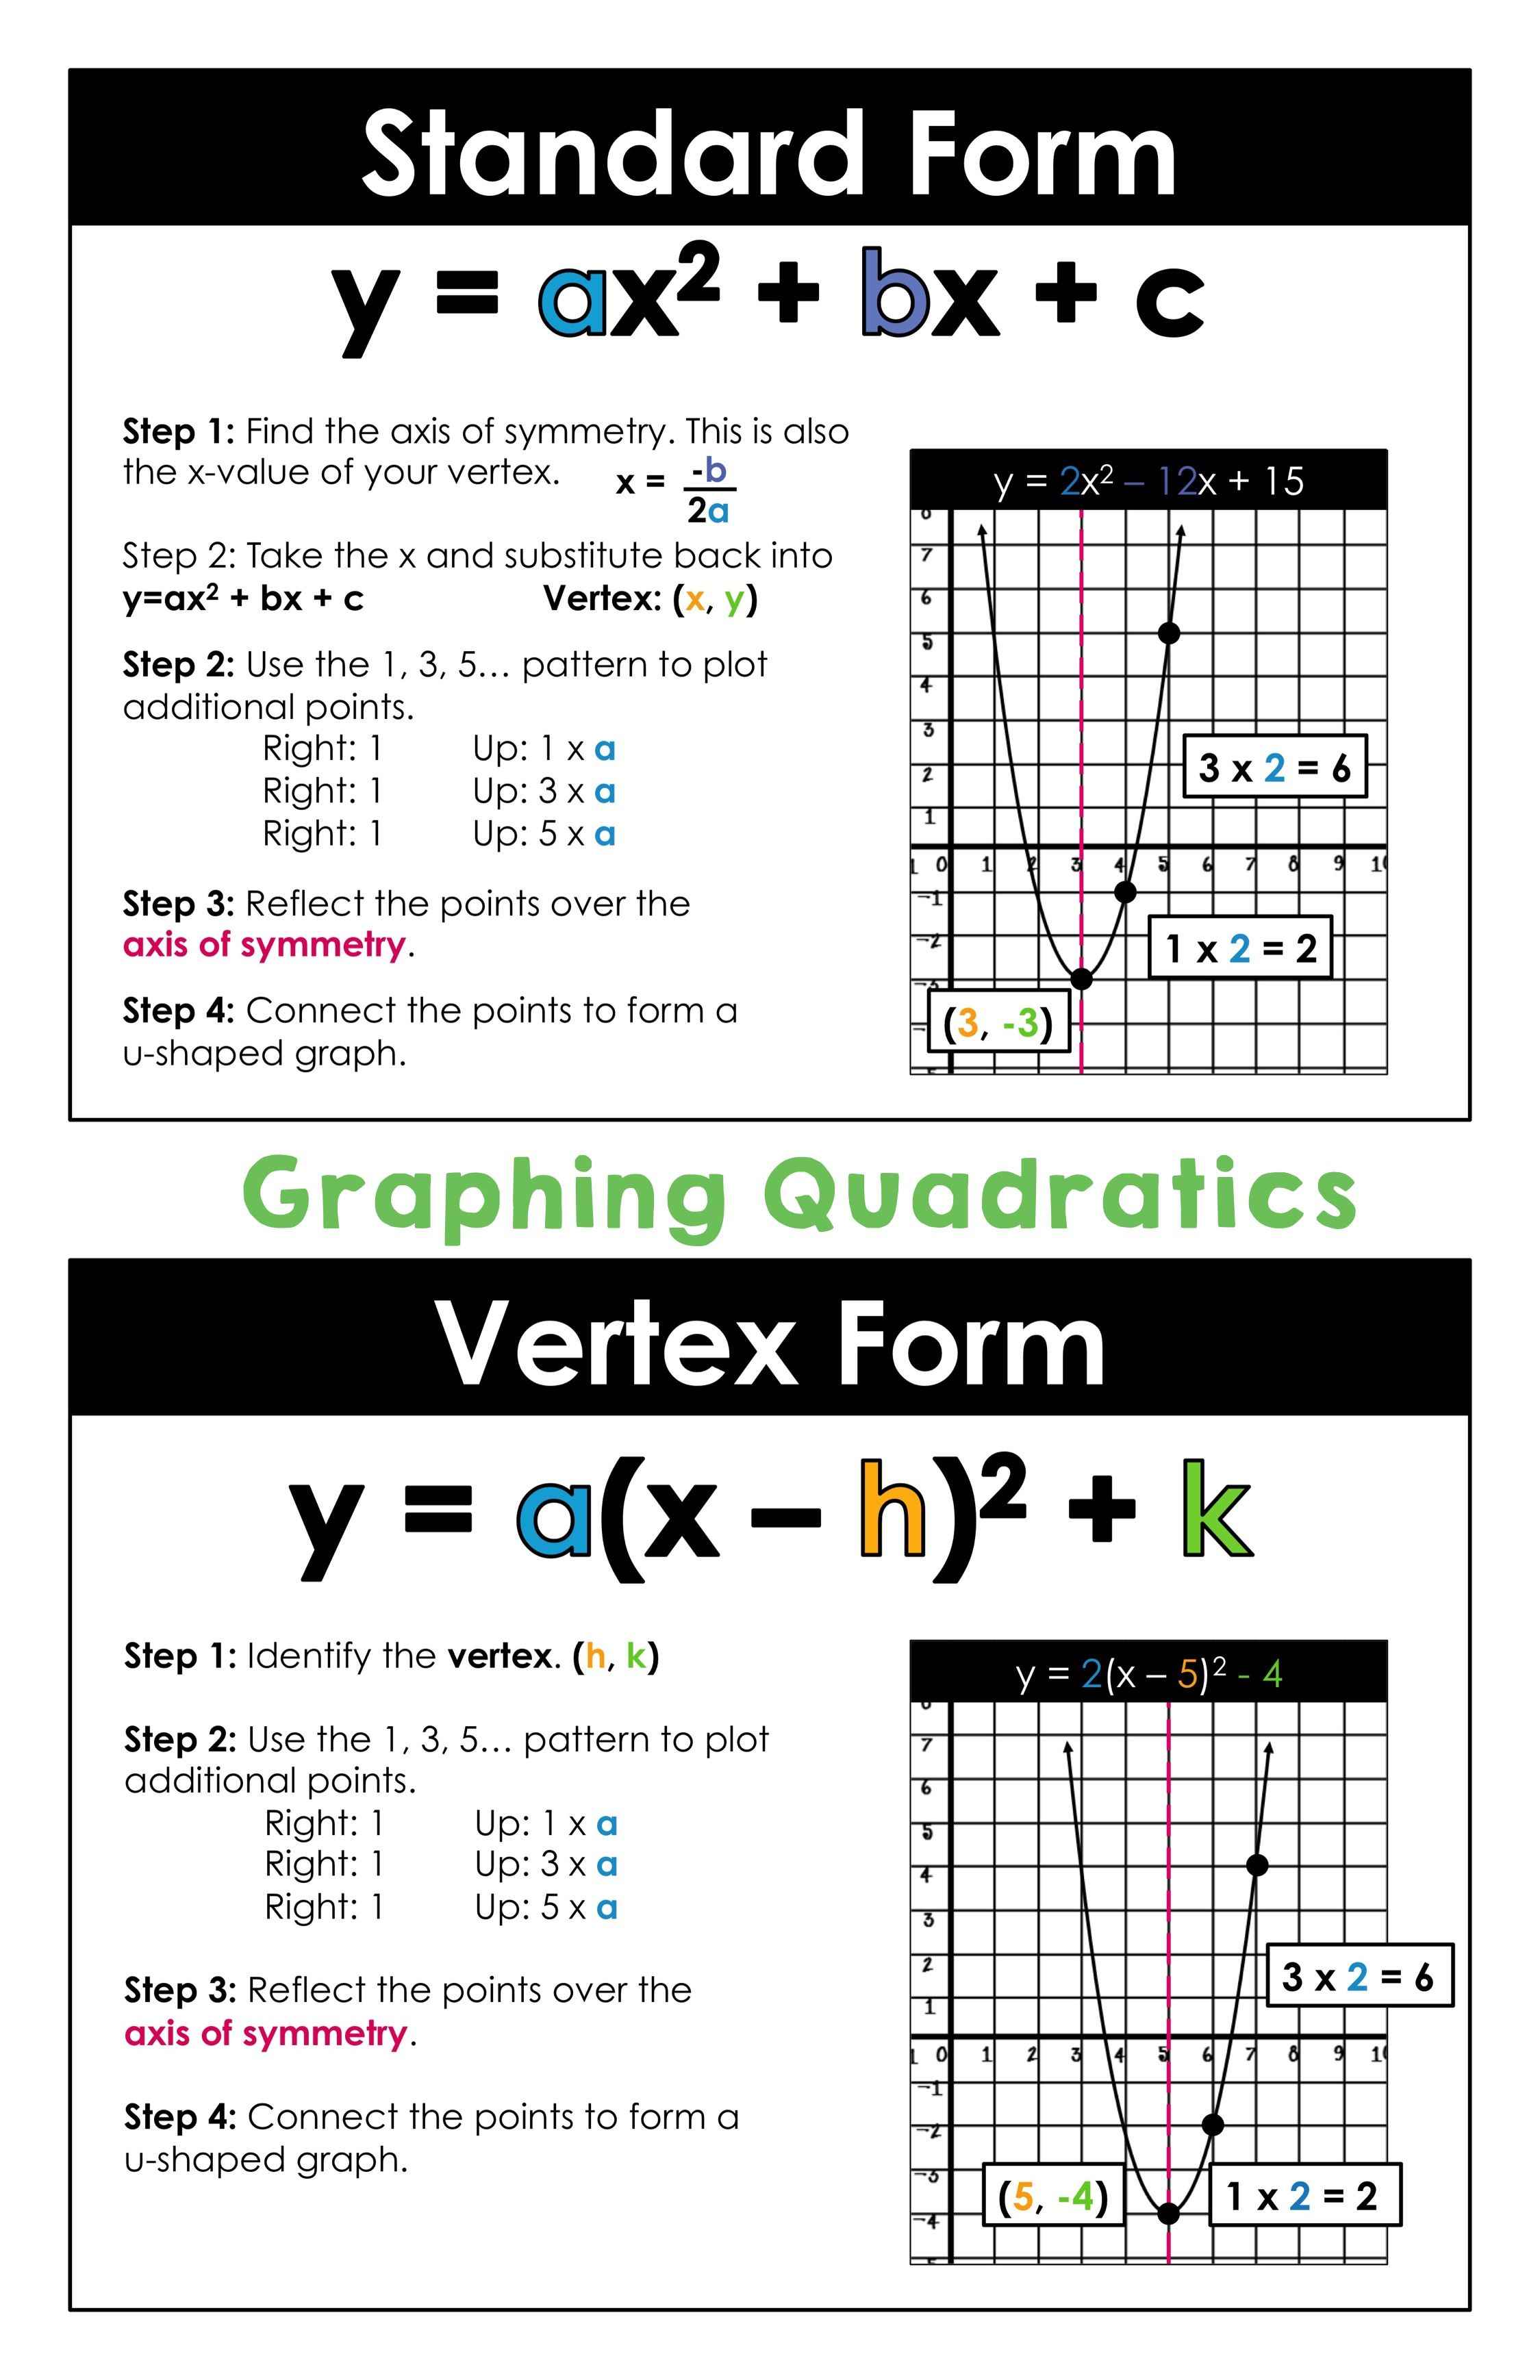 Graphing quadratics in standard form and vertex form includes graphing quadratics in standard form and vertex form includes color copied that can be used falaconquin